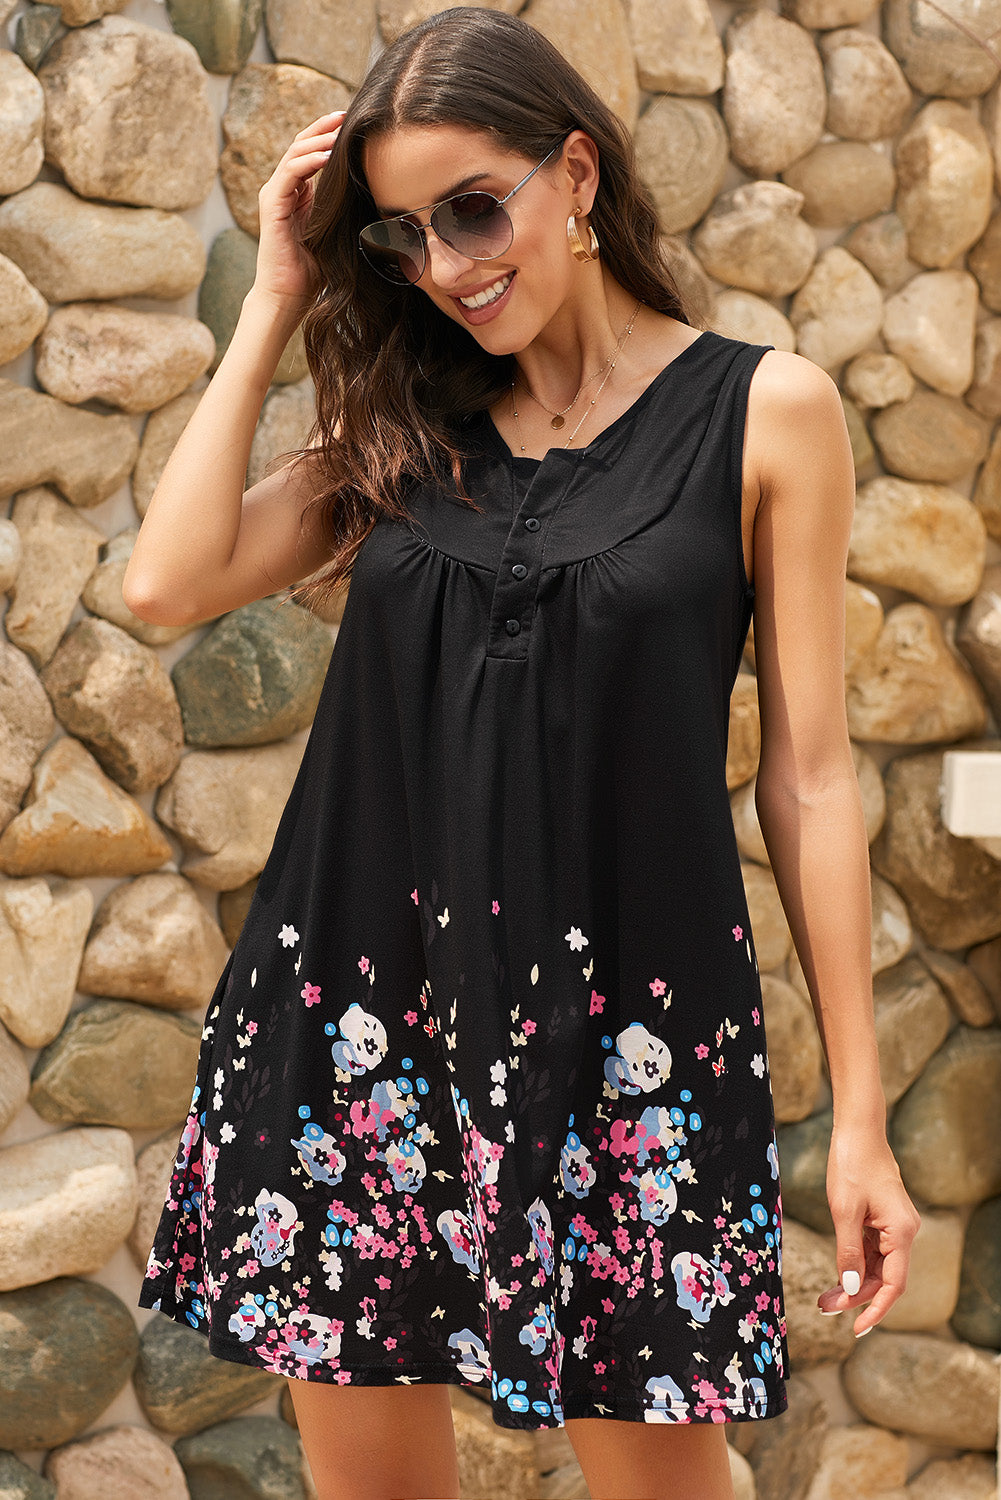 Black Crew Neck A-Line Daily Beach Floral Dress